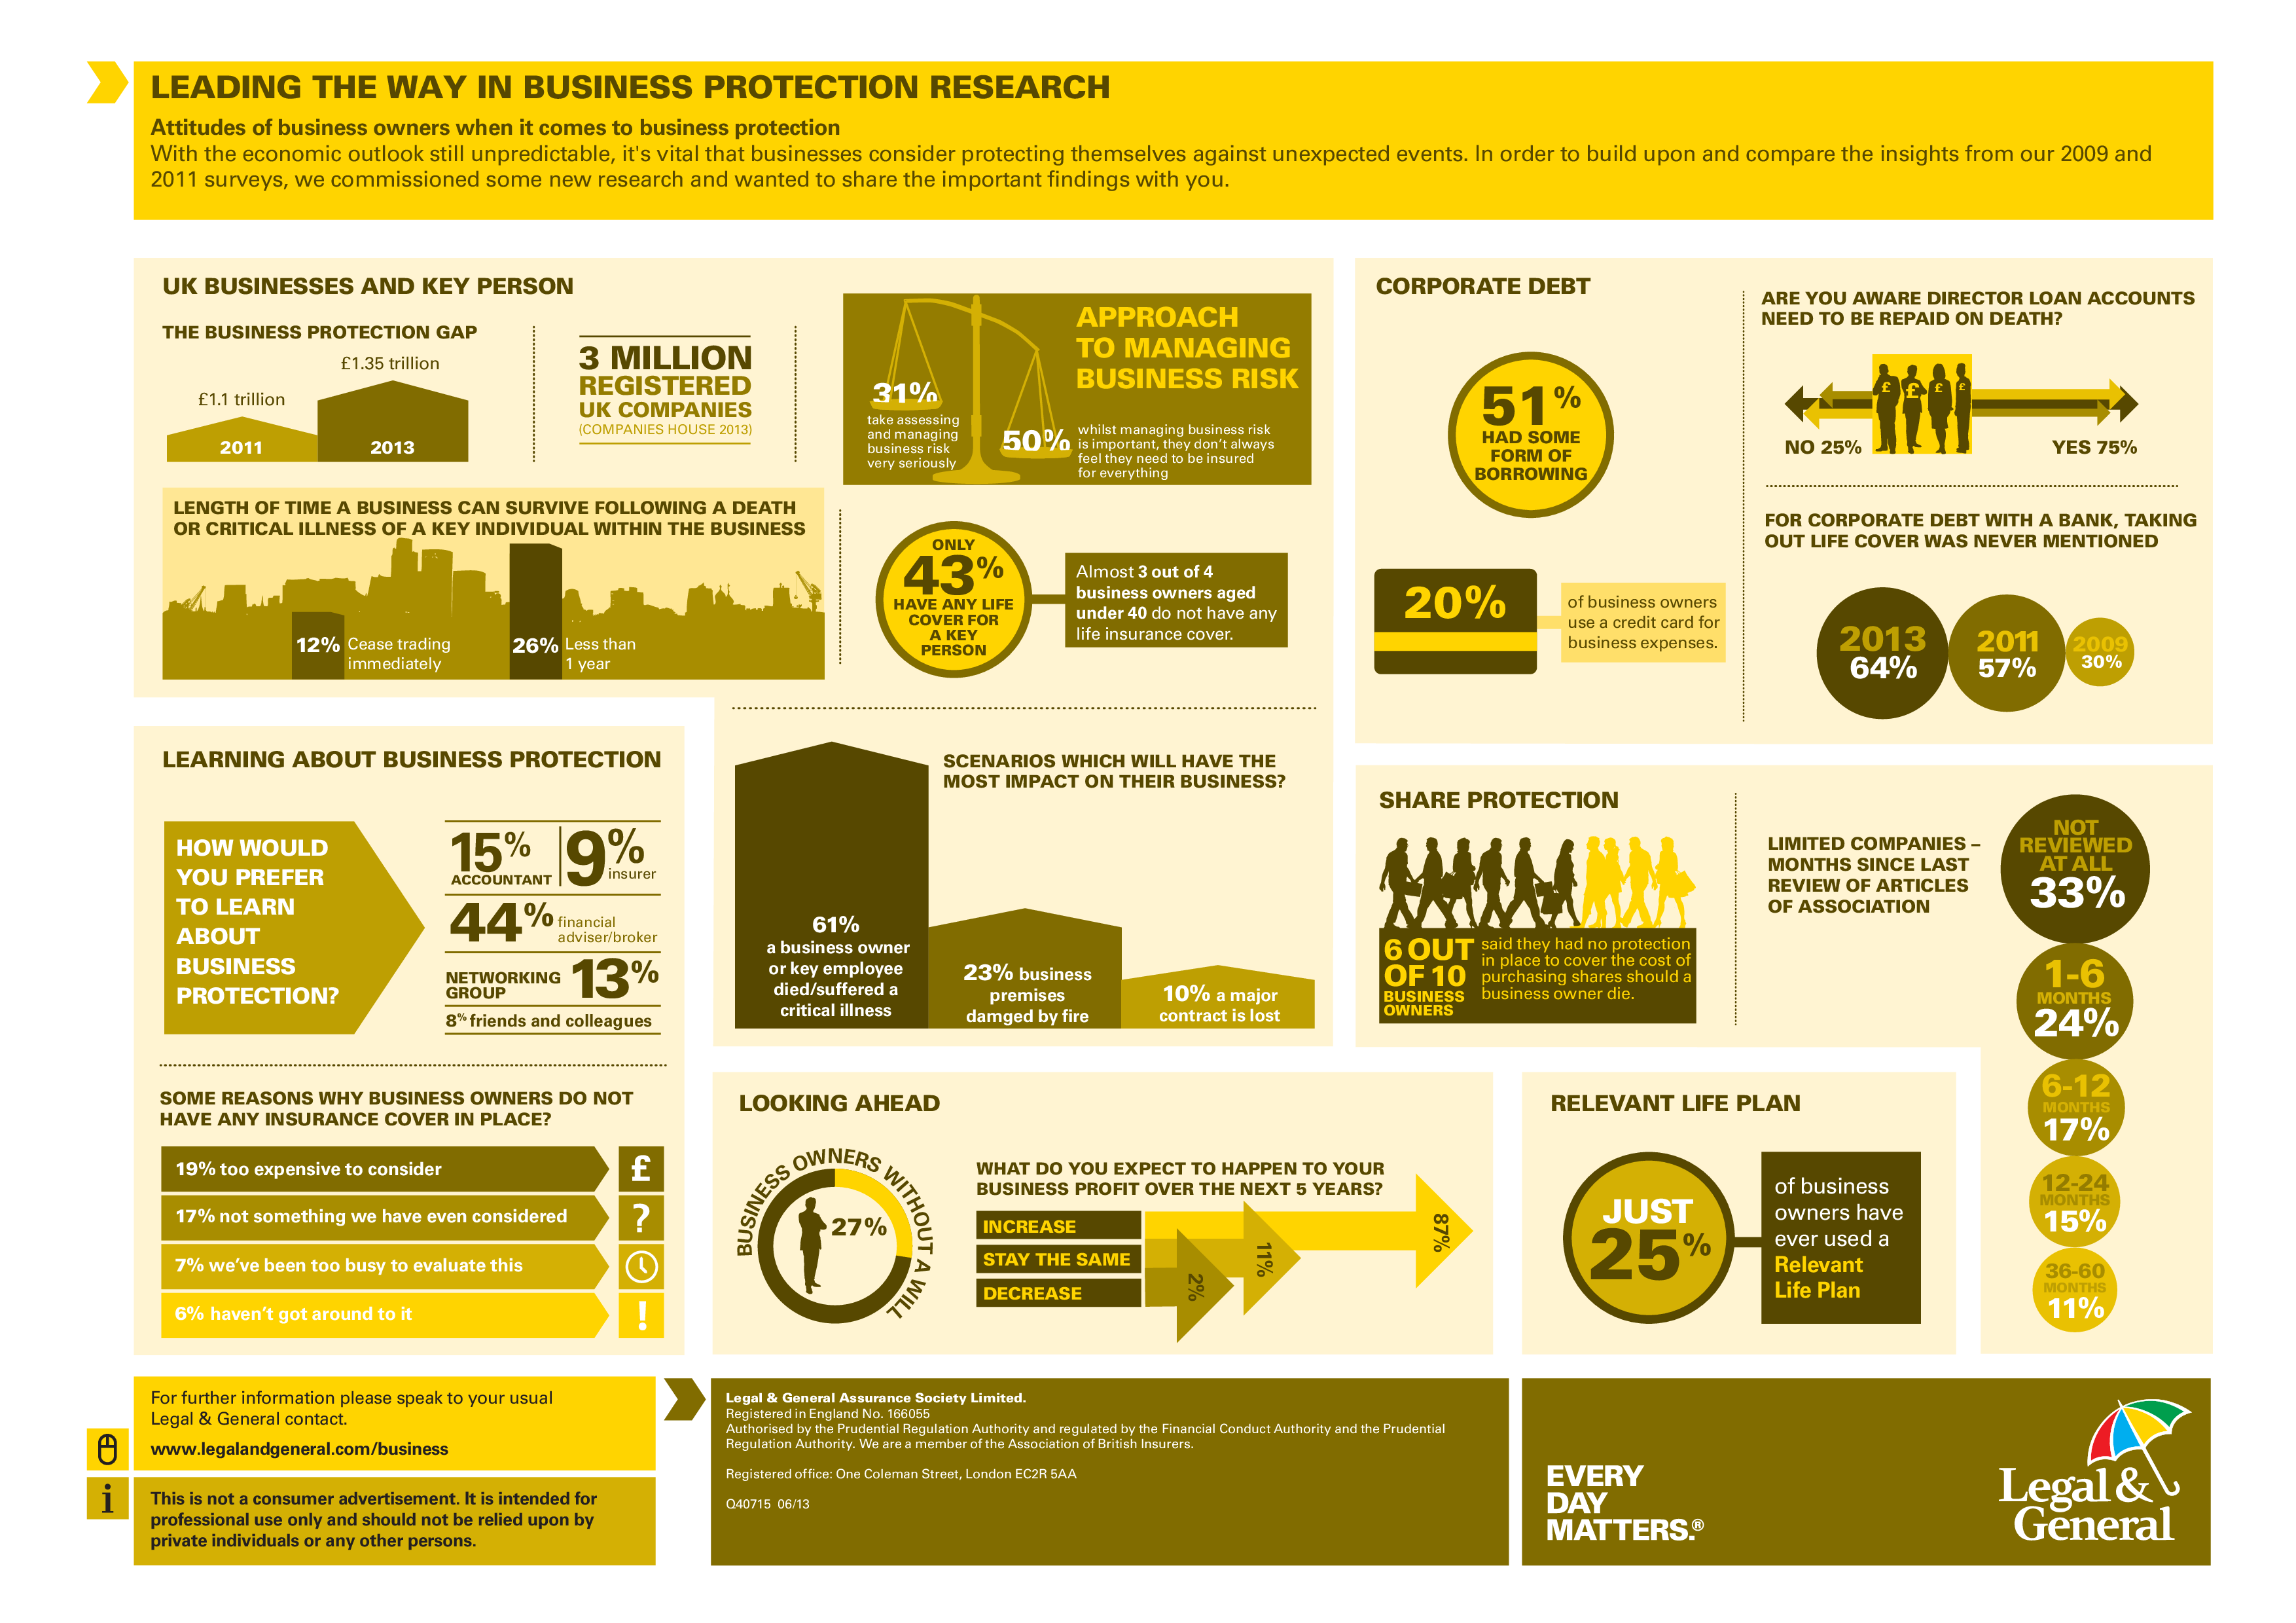 Infographic Showing Business Owners Attitudes Towards Business Protection- Research by Legal and General 2013